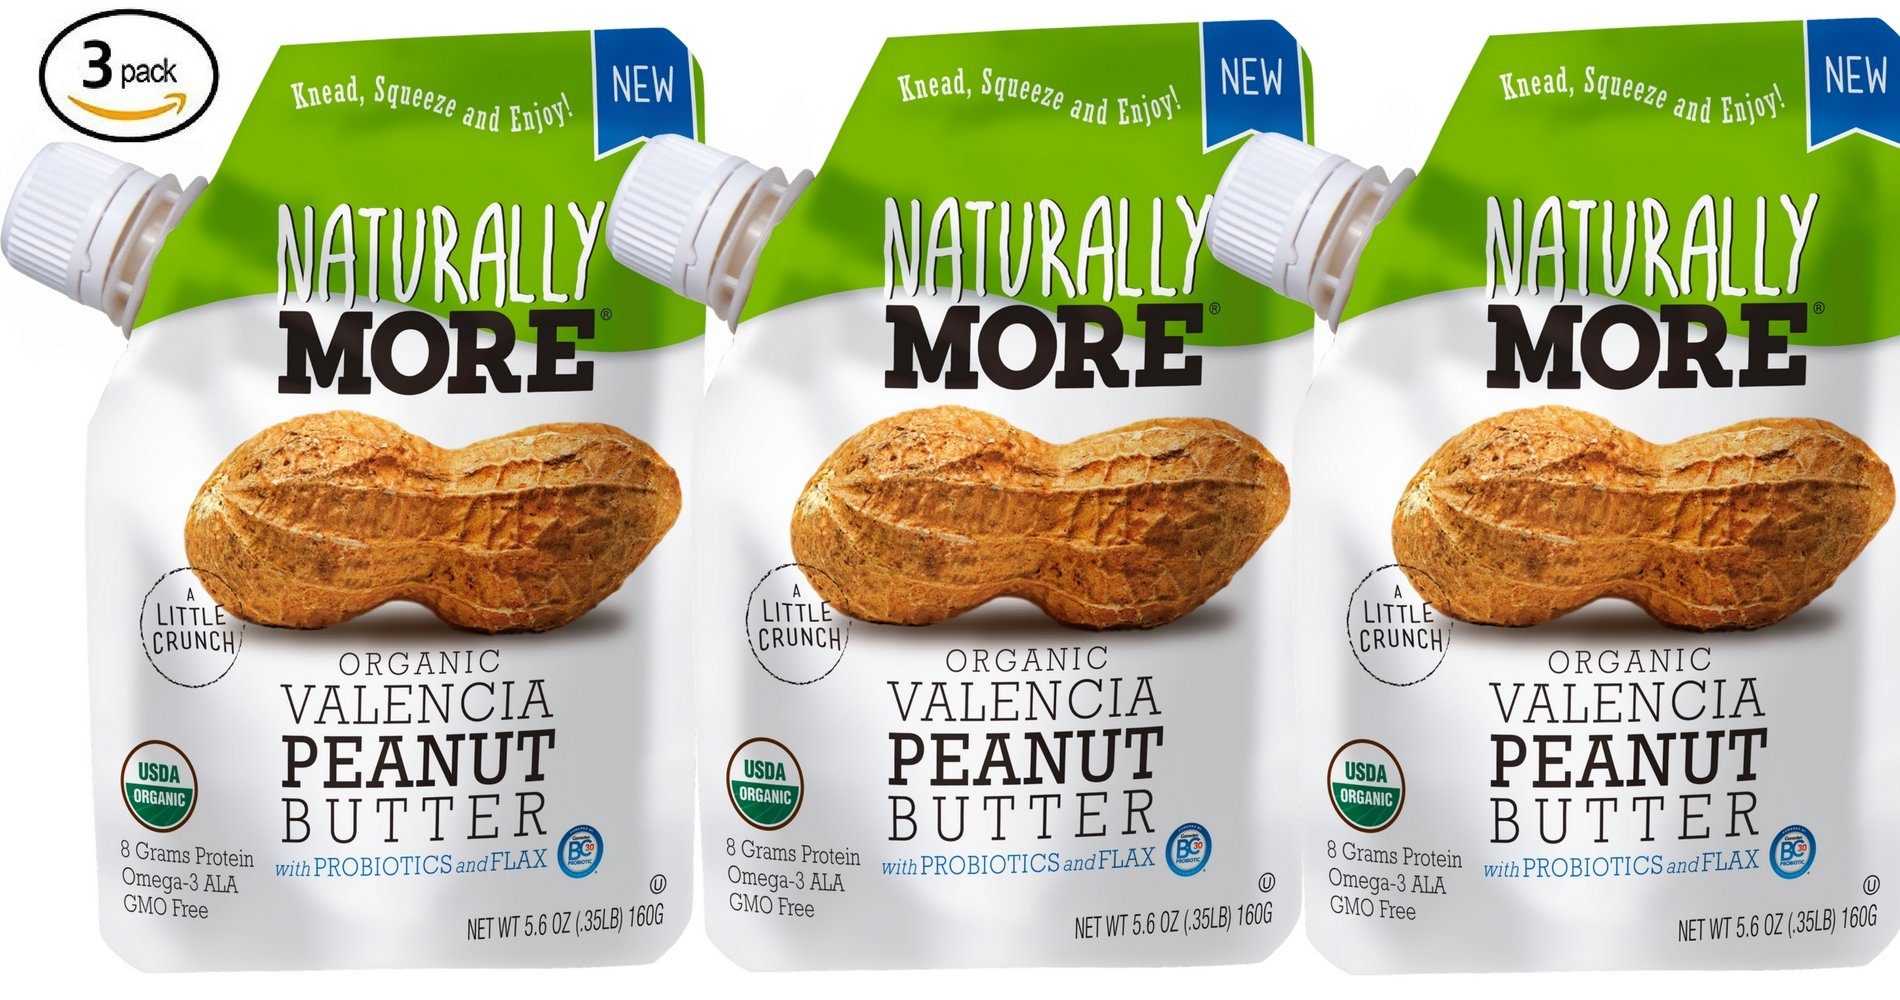 Naturally More 100% Organic Peanut Butter - All Natural - Probiotic Infused-Premium Roasted Peanut Taste-Heart Healthy Flax - Vegan - Gluten Free - Plant Based - Travel Size Snack Packets (3 Packs) by Naturally More